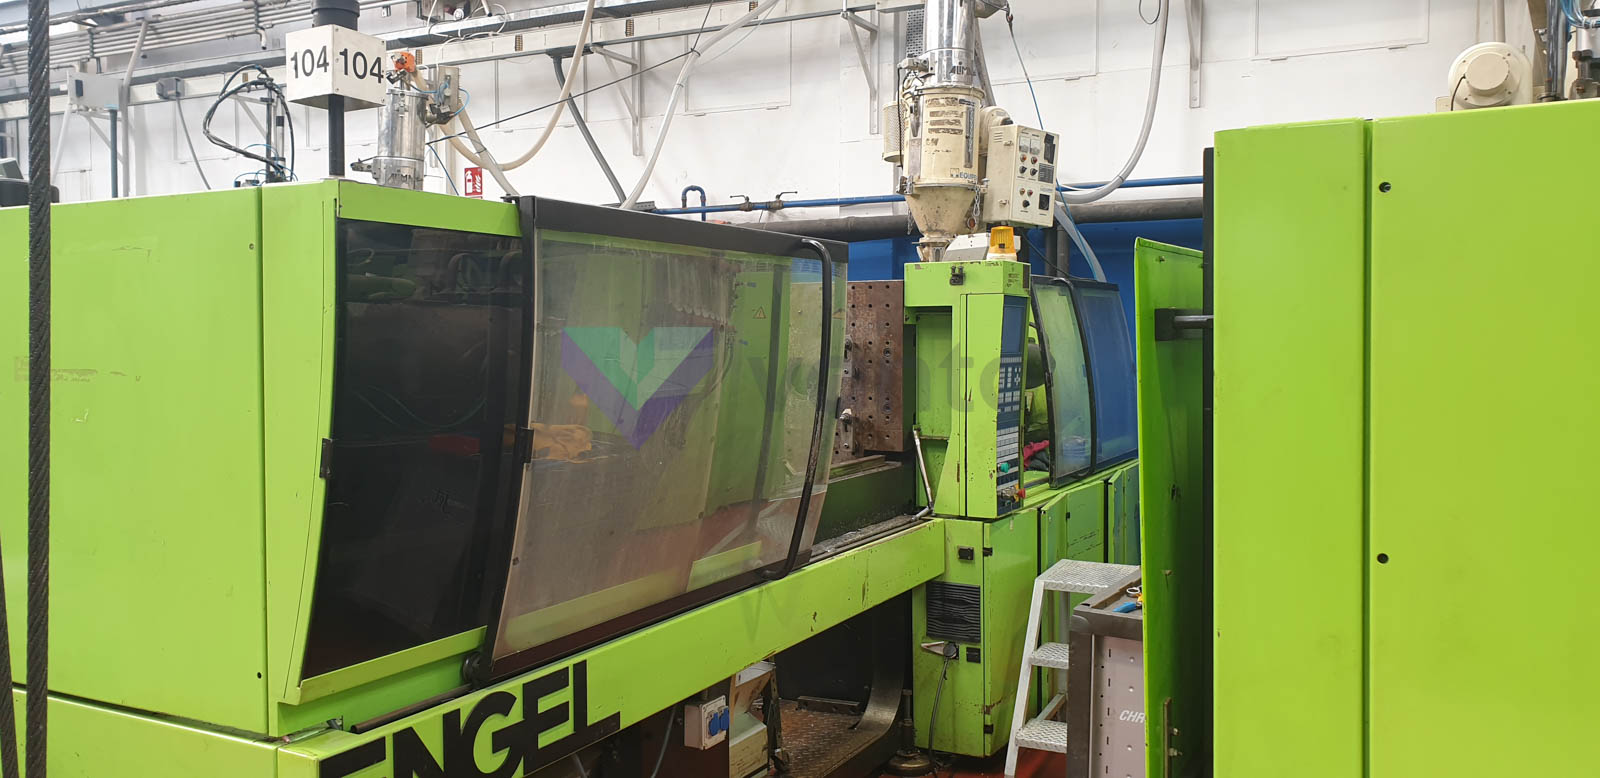 ENGEL ES 750 / 175 HLST 175t injection molding machine (1998) id10506